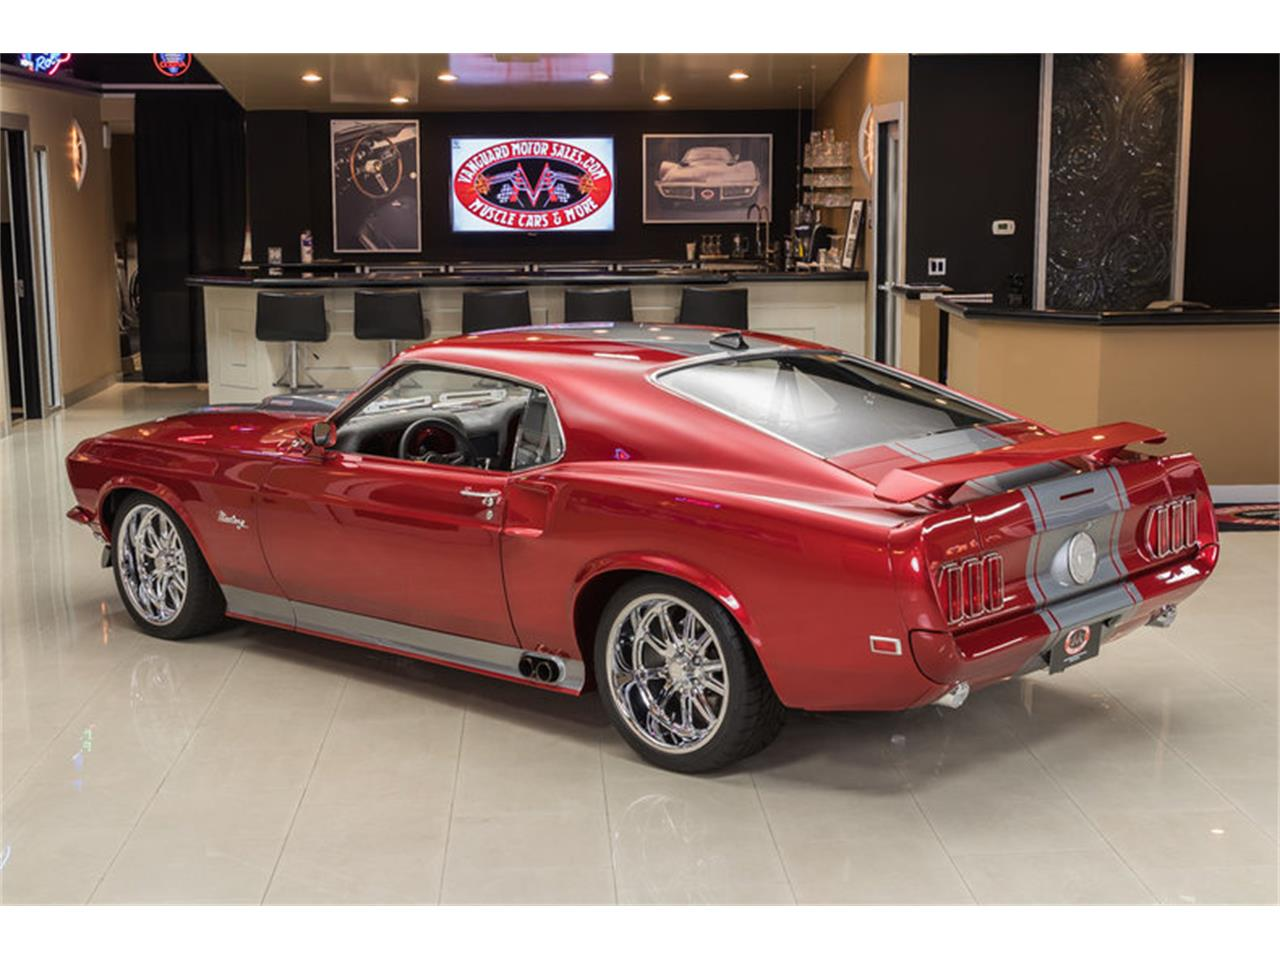 Large Picture of Classic 1969 Mustang Fastback Restomod - $194,900.00 - L6C8